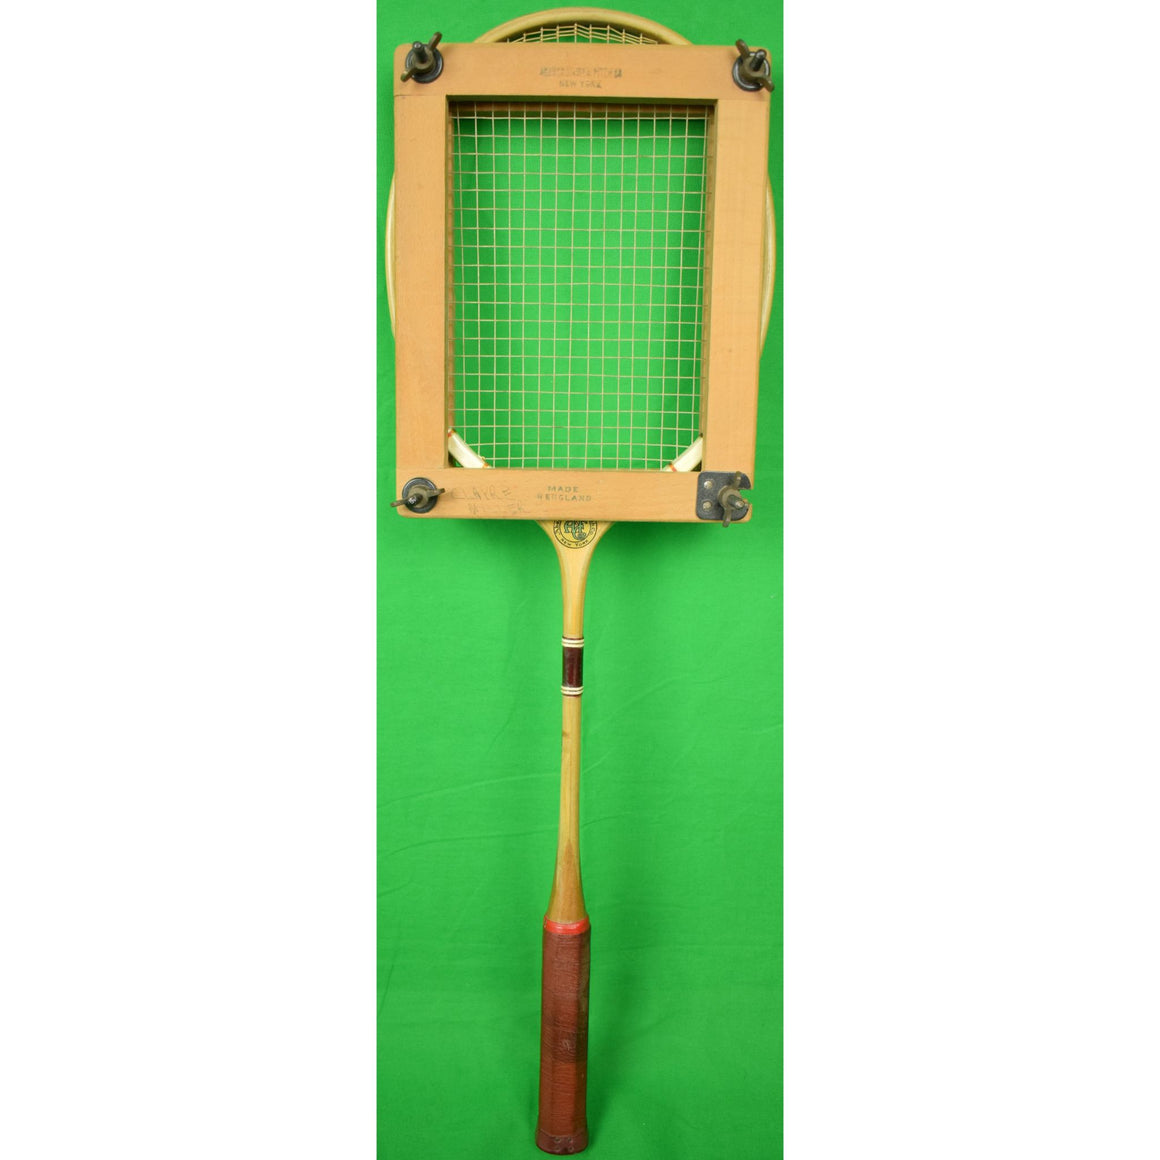 Abercrombie & Fitch English Badminton Racquet w/ Wood Press